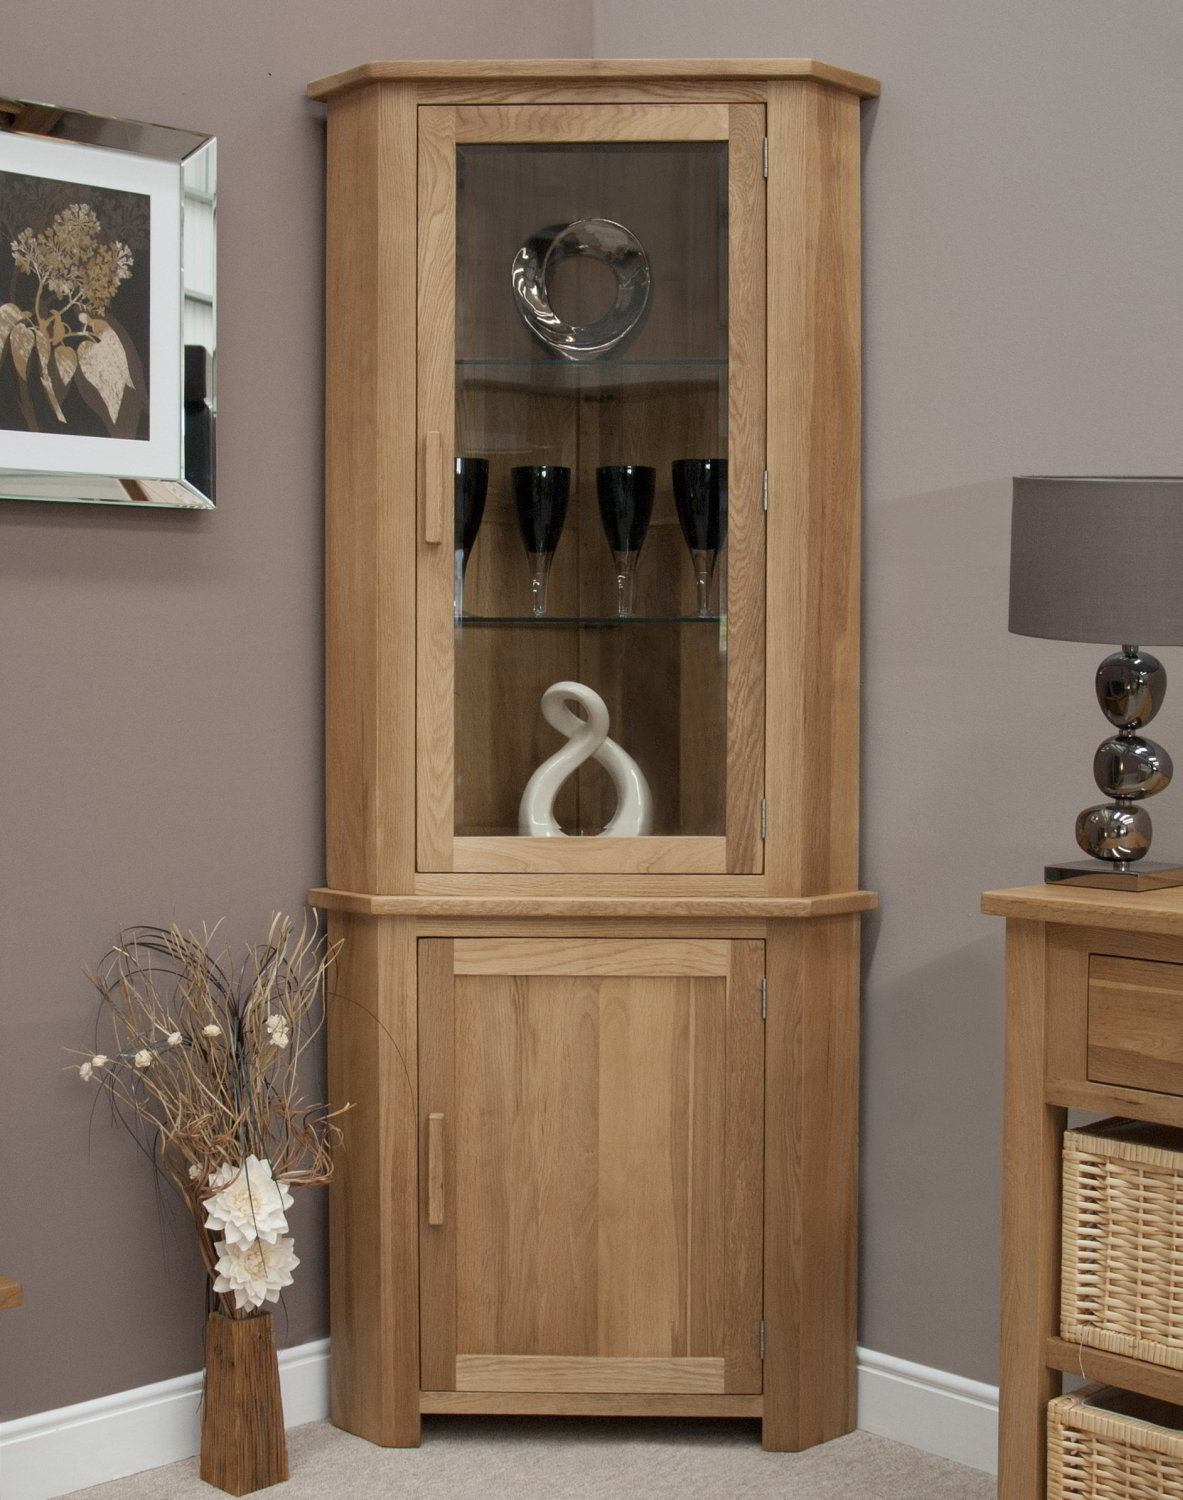 Details about Eton solid oak living room furniture corner display cabinet  unit with light